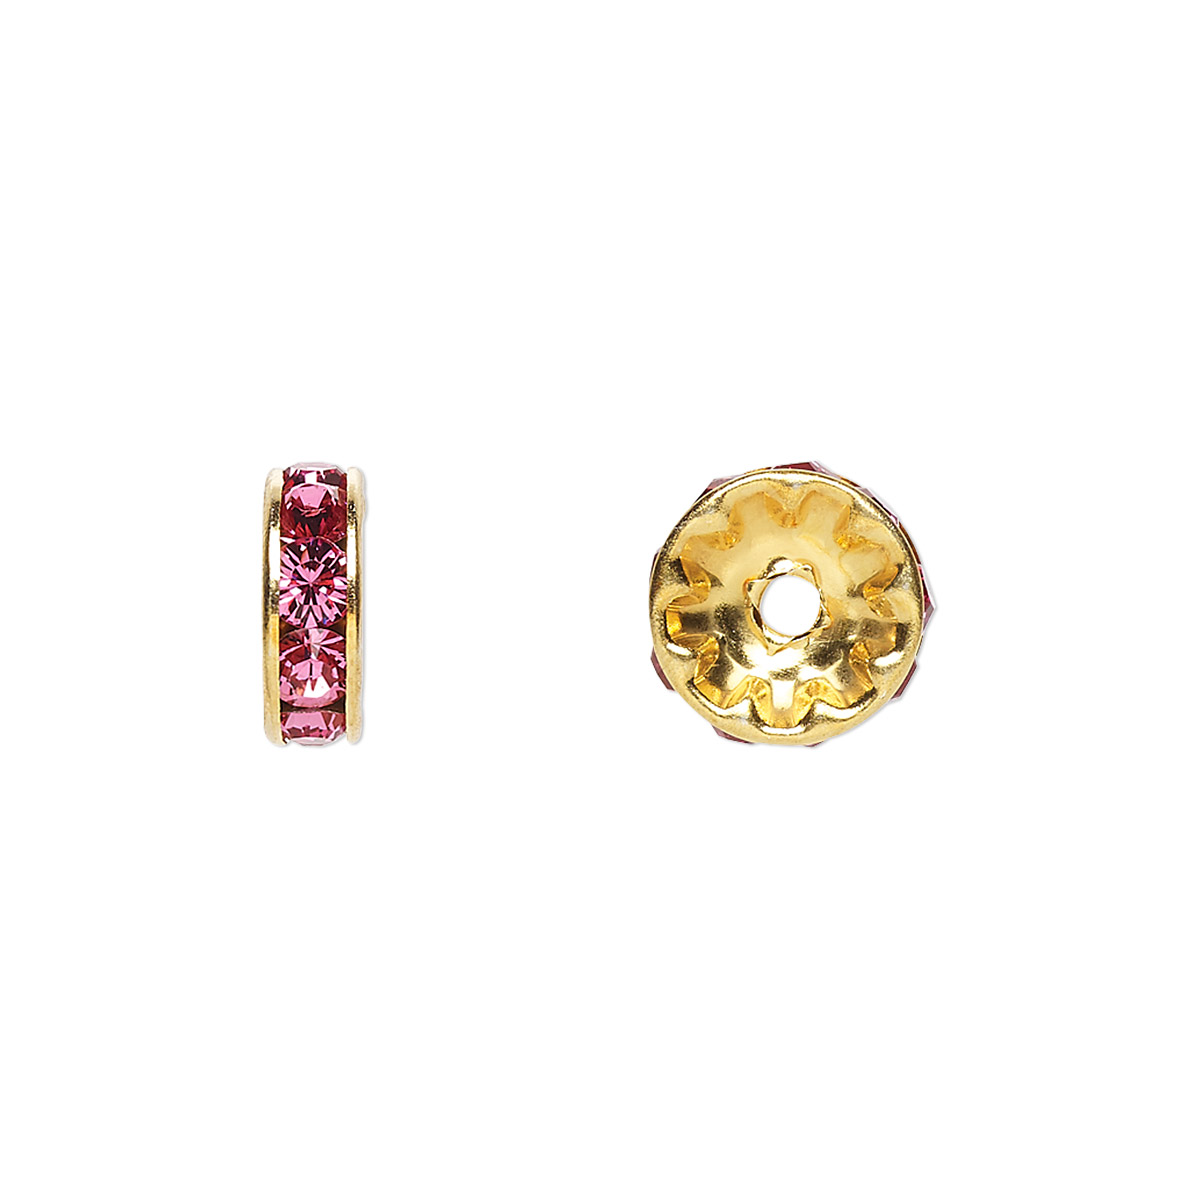 18d45a86ec179 Bead, Swarovski® crystals and gold-plated brass, Crystal Passions ...